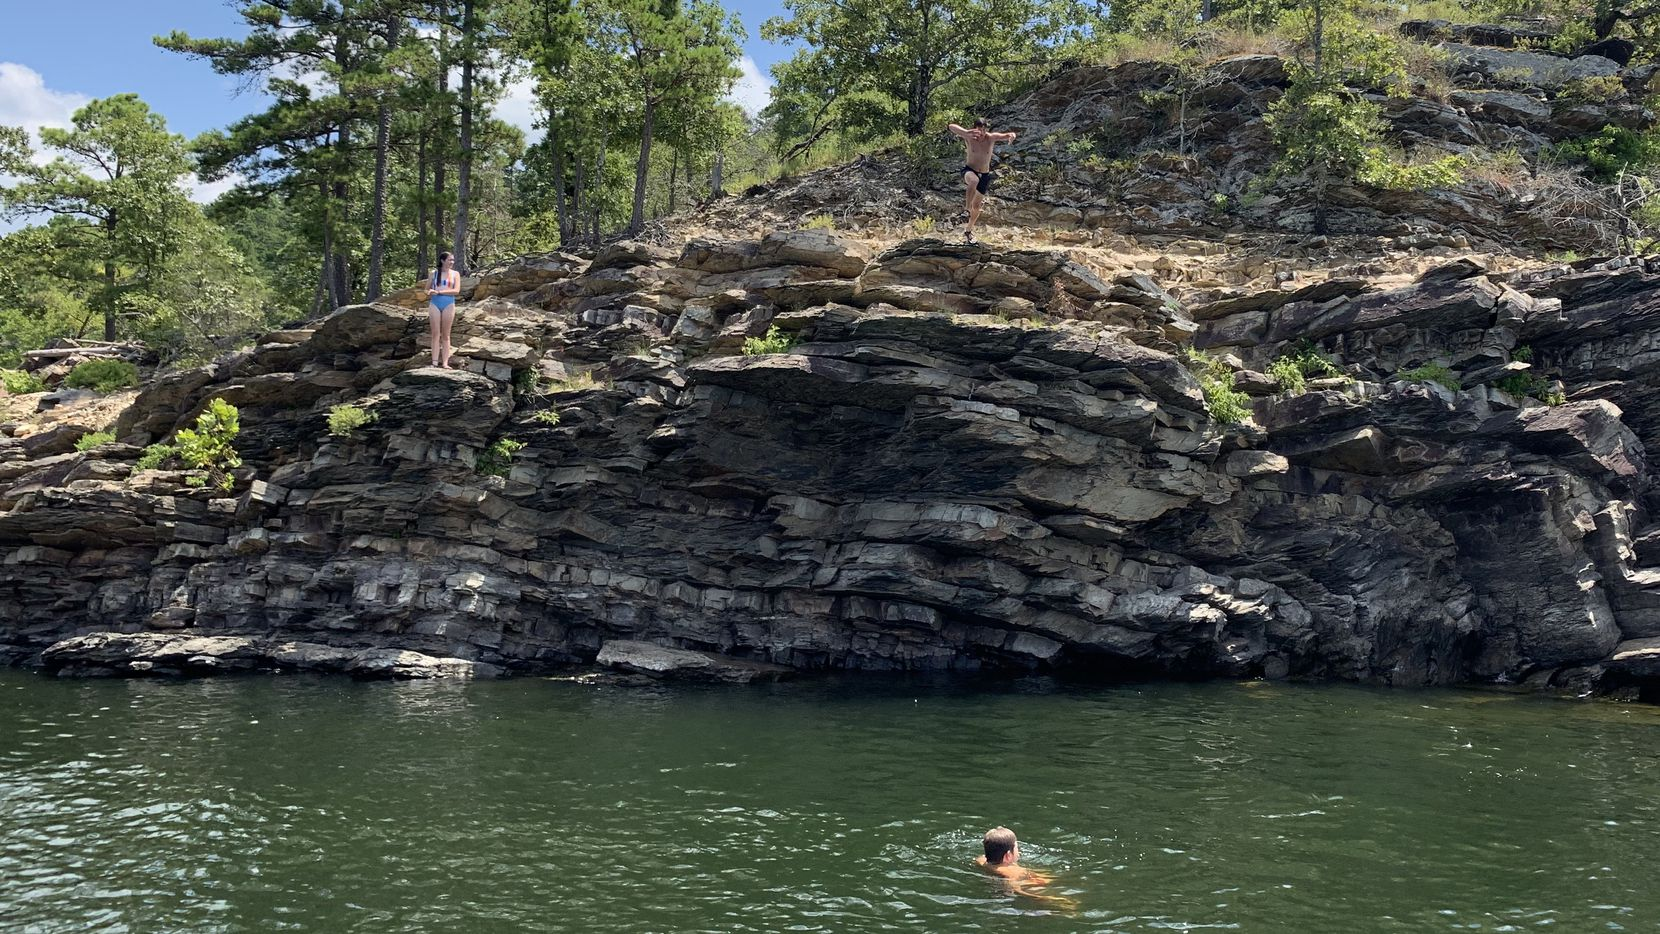 Cooper Damm went cliff-diving during a recent vacation to Beavers Bend State Park.